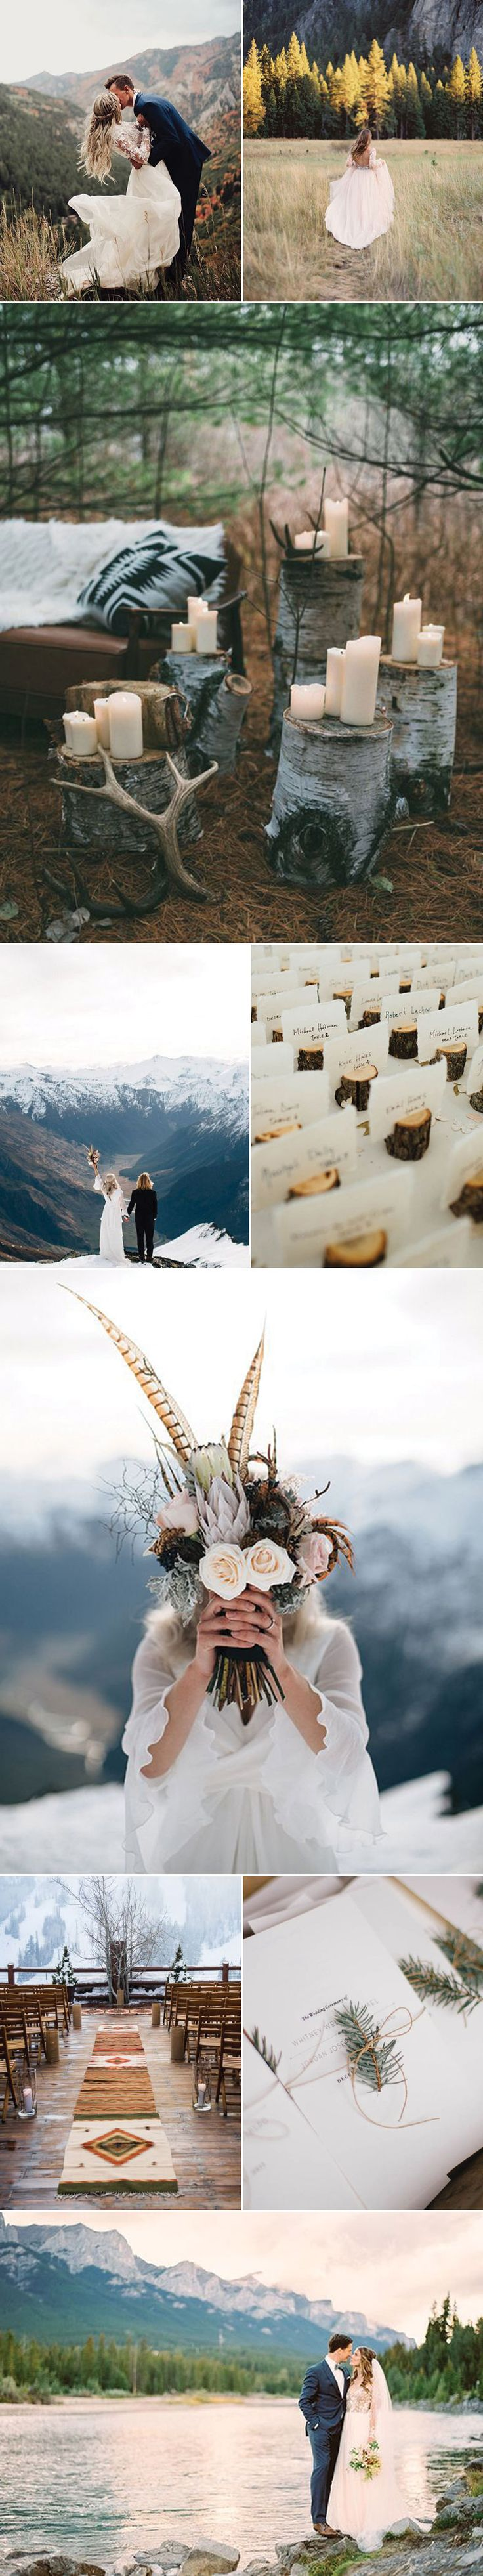 Mountain Weddings can be filled with adventure and are absolutely breathtaking.